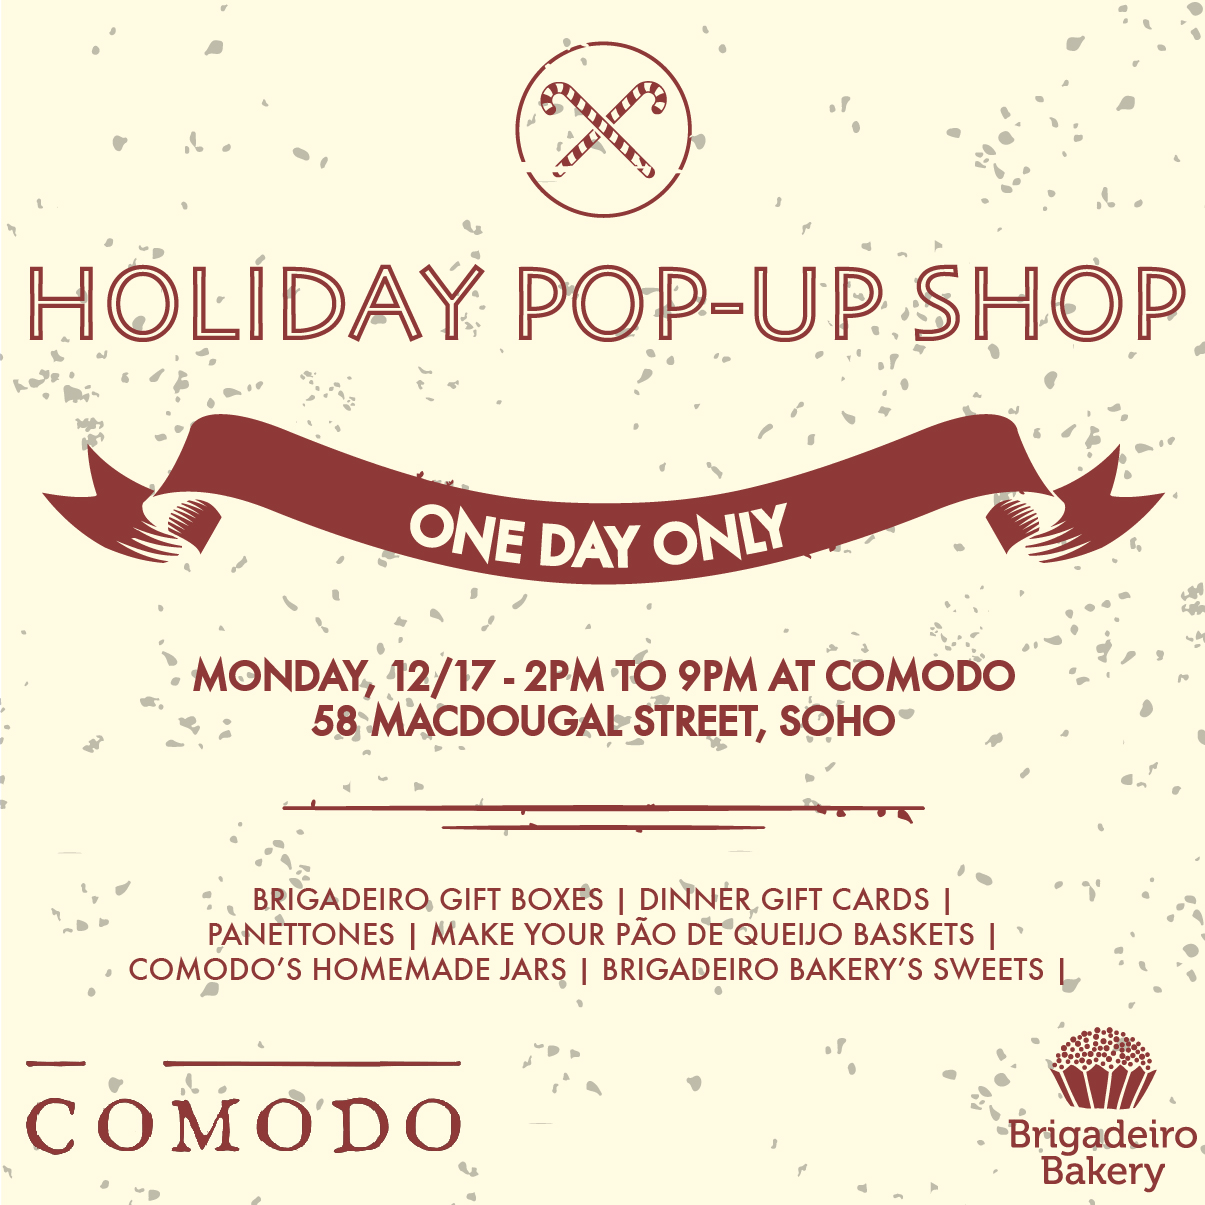 Brigadeiro Bakery and Comodo Holiday Pop-up Shop